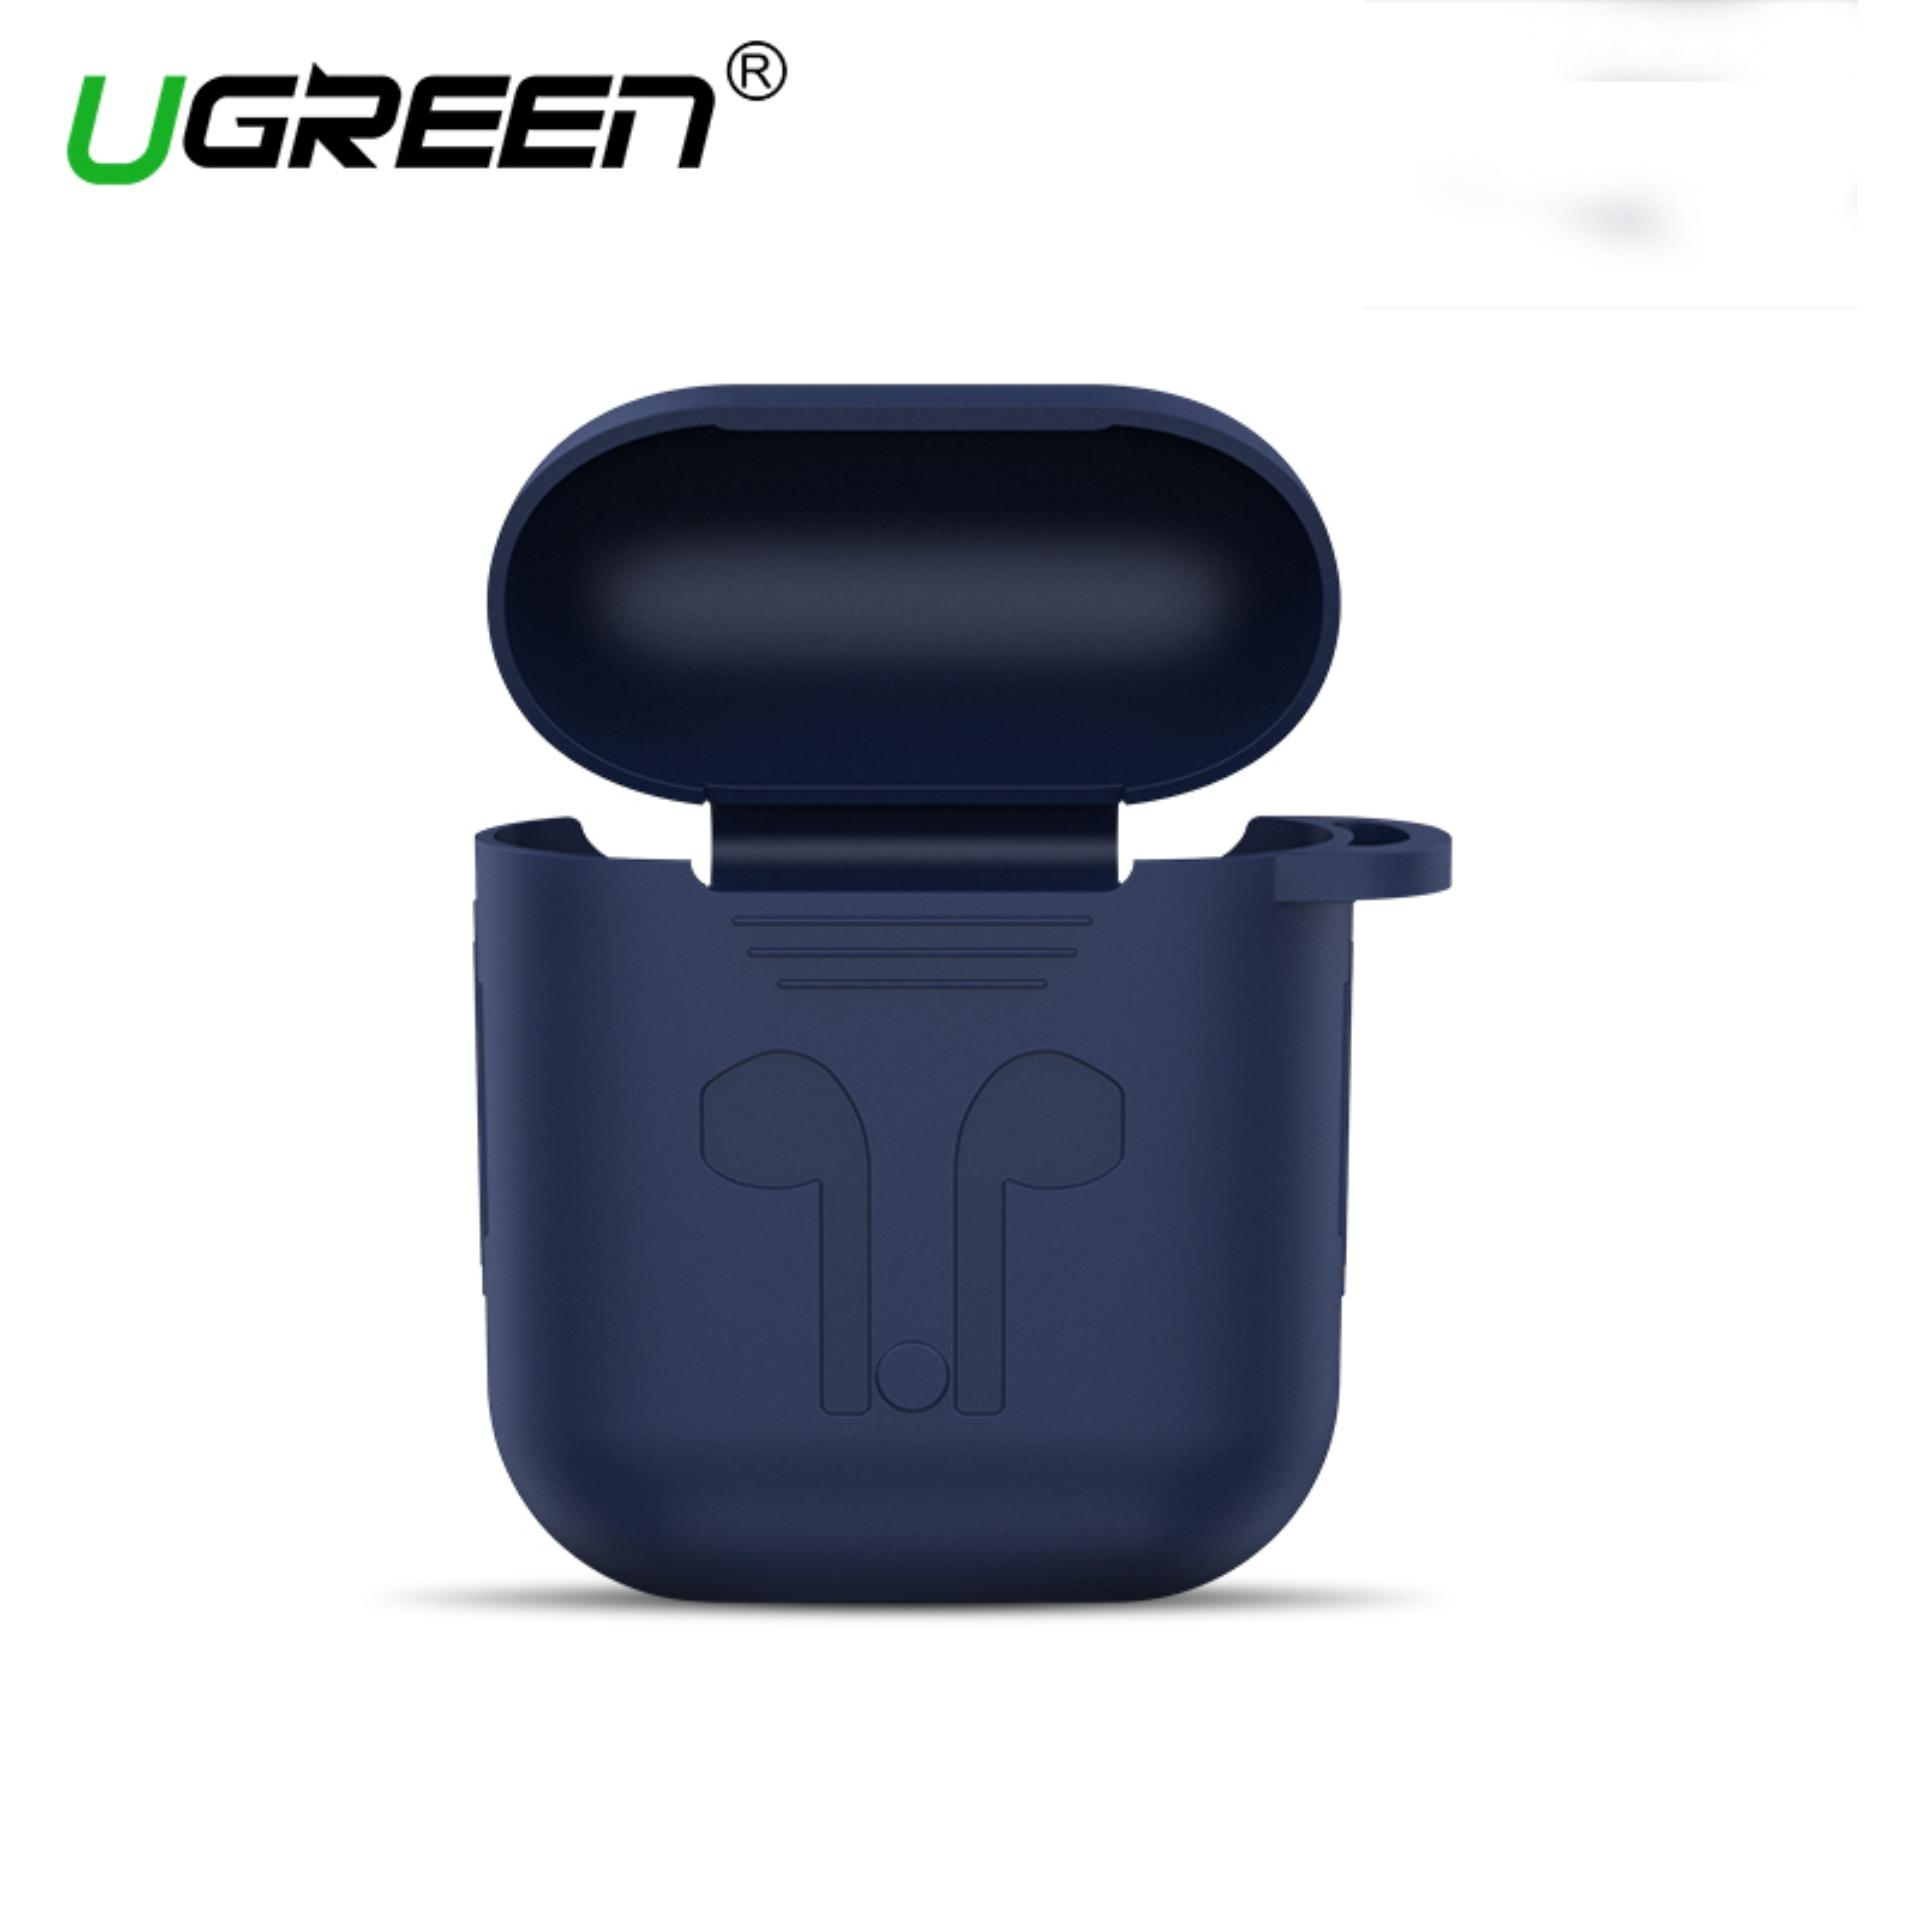 UGREEN Earphone Case for Apple AirPods Silicone Cover Wireless Bluetooth Headphone Air Pods Pouch Protective AirPod